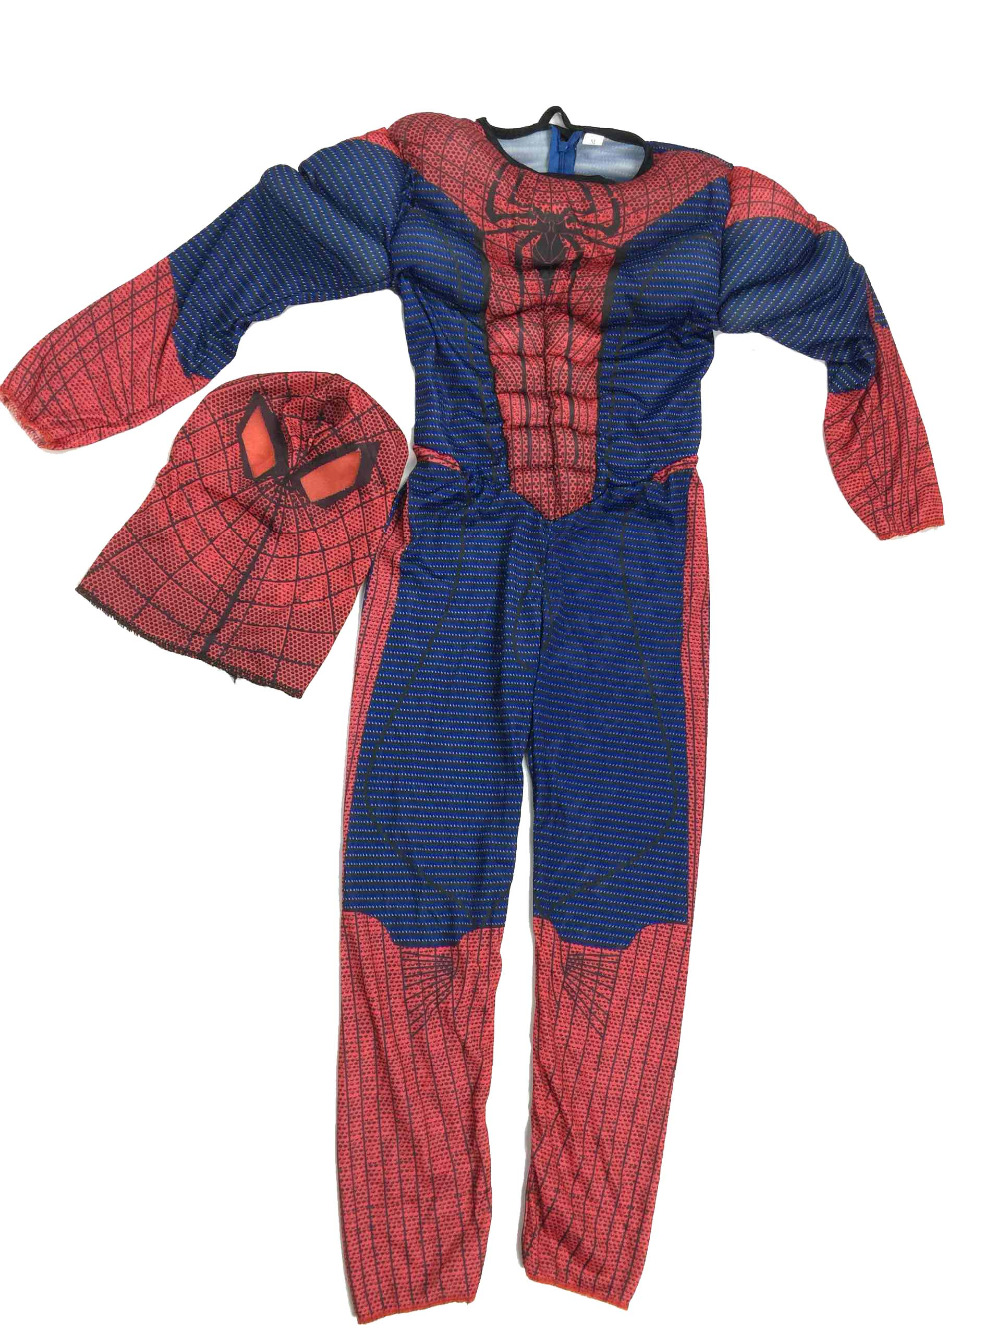 Spiderman Movie Classic Muscle Child Halloween-Kostüm für Kinder - Kostüme - Foto 2